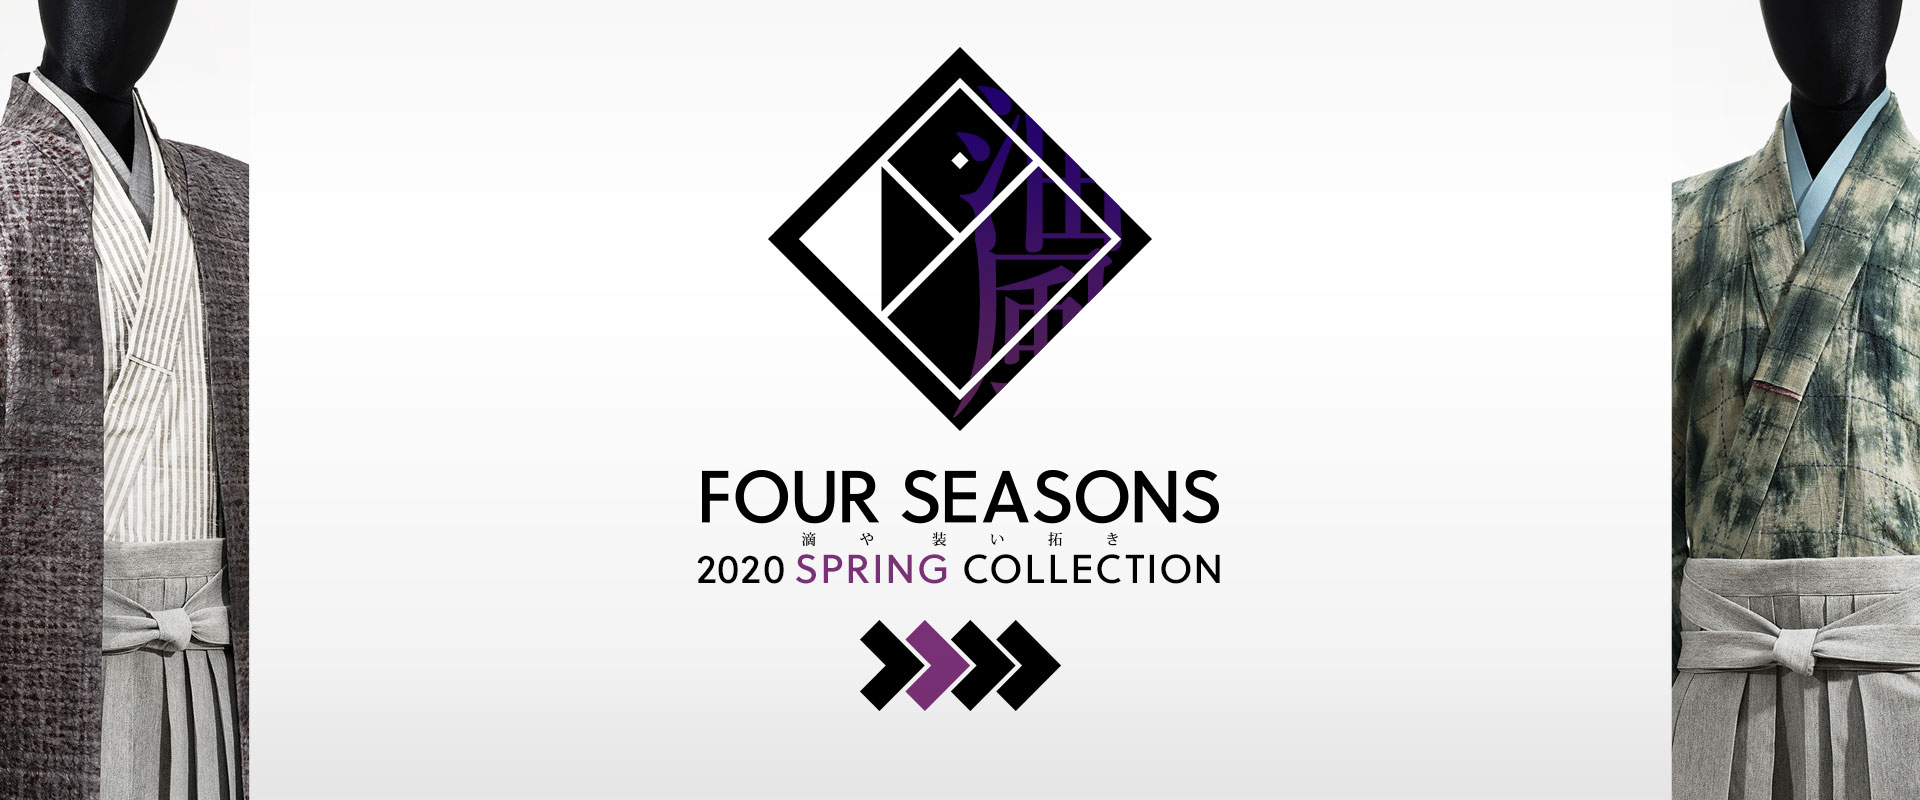 [PHOTO:FOUR SEASONS 2020 SPRING COLLECTION]